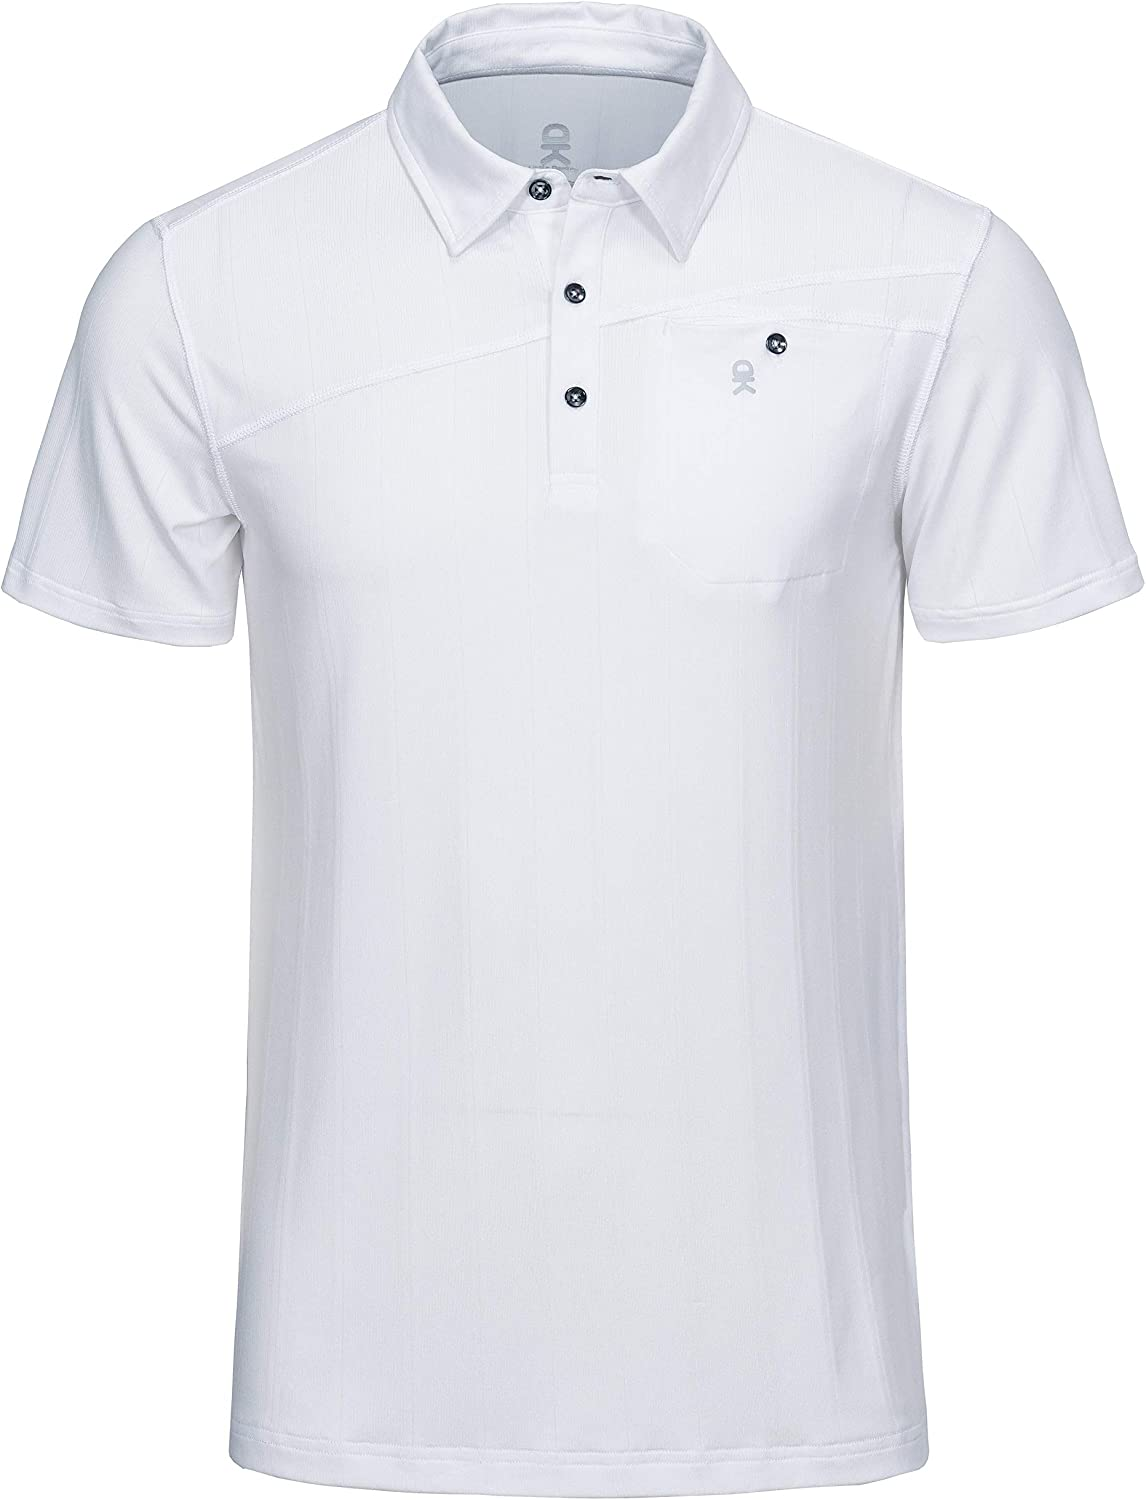 Little Donkey Andy Men's Performance Polo Shirts Short/Long Sleeve Quick-Dry Athletic Golf Shirts